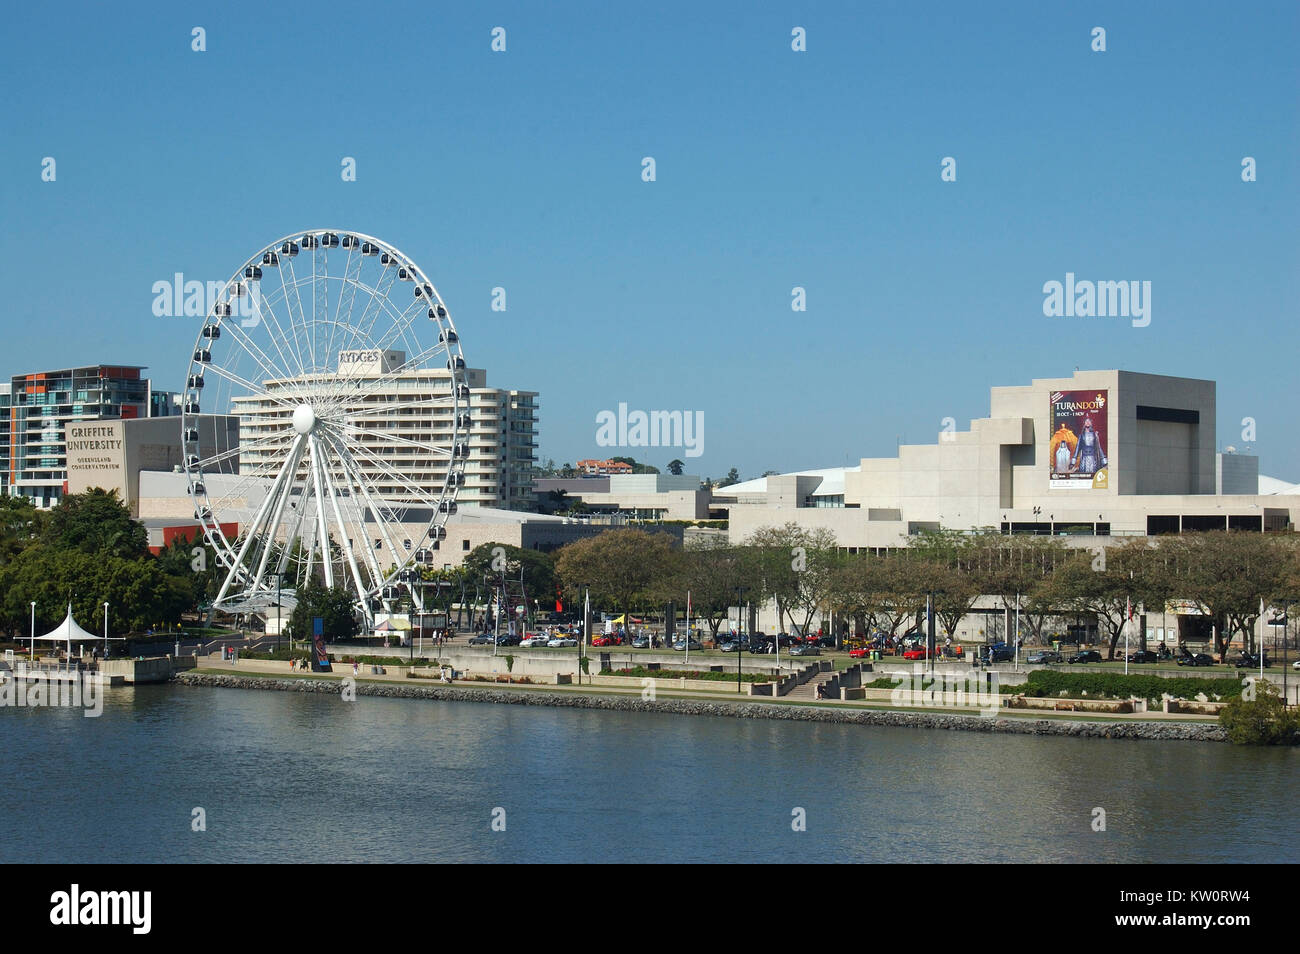 BRISBANE, AUSTRALIA, SEPTEMBER 29, 2008: Giant ferris wheel dominates the cultural centre on  September 29, 2008, - Stock Image